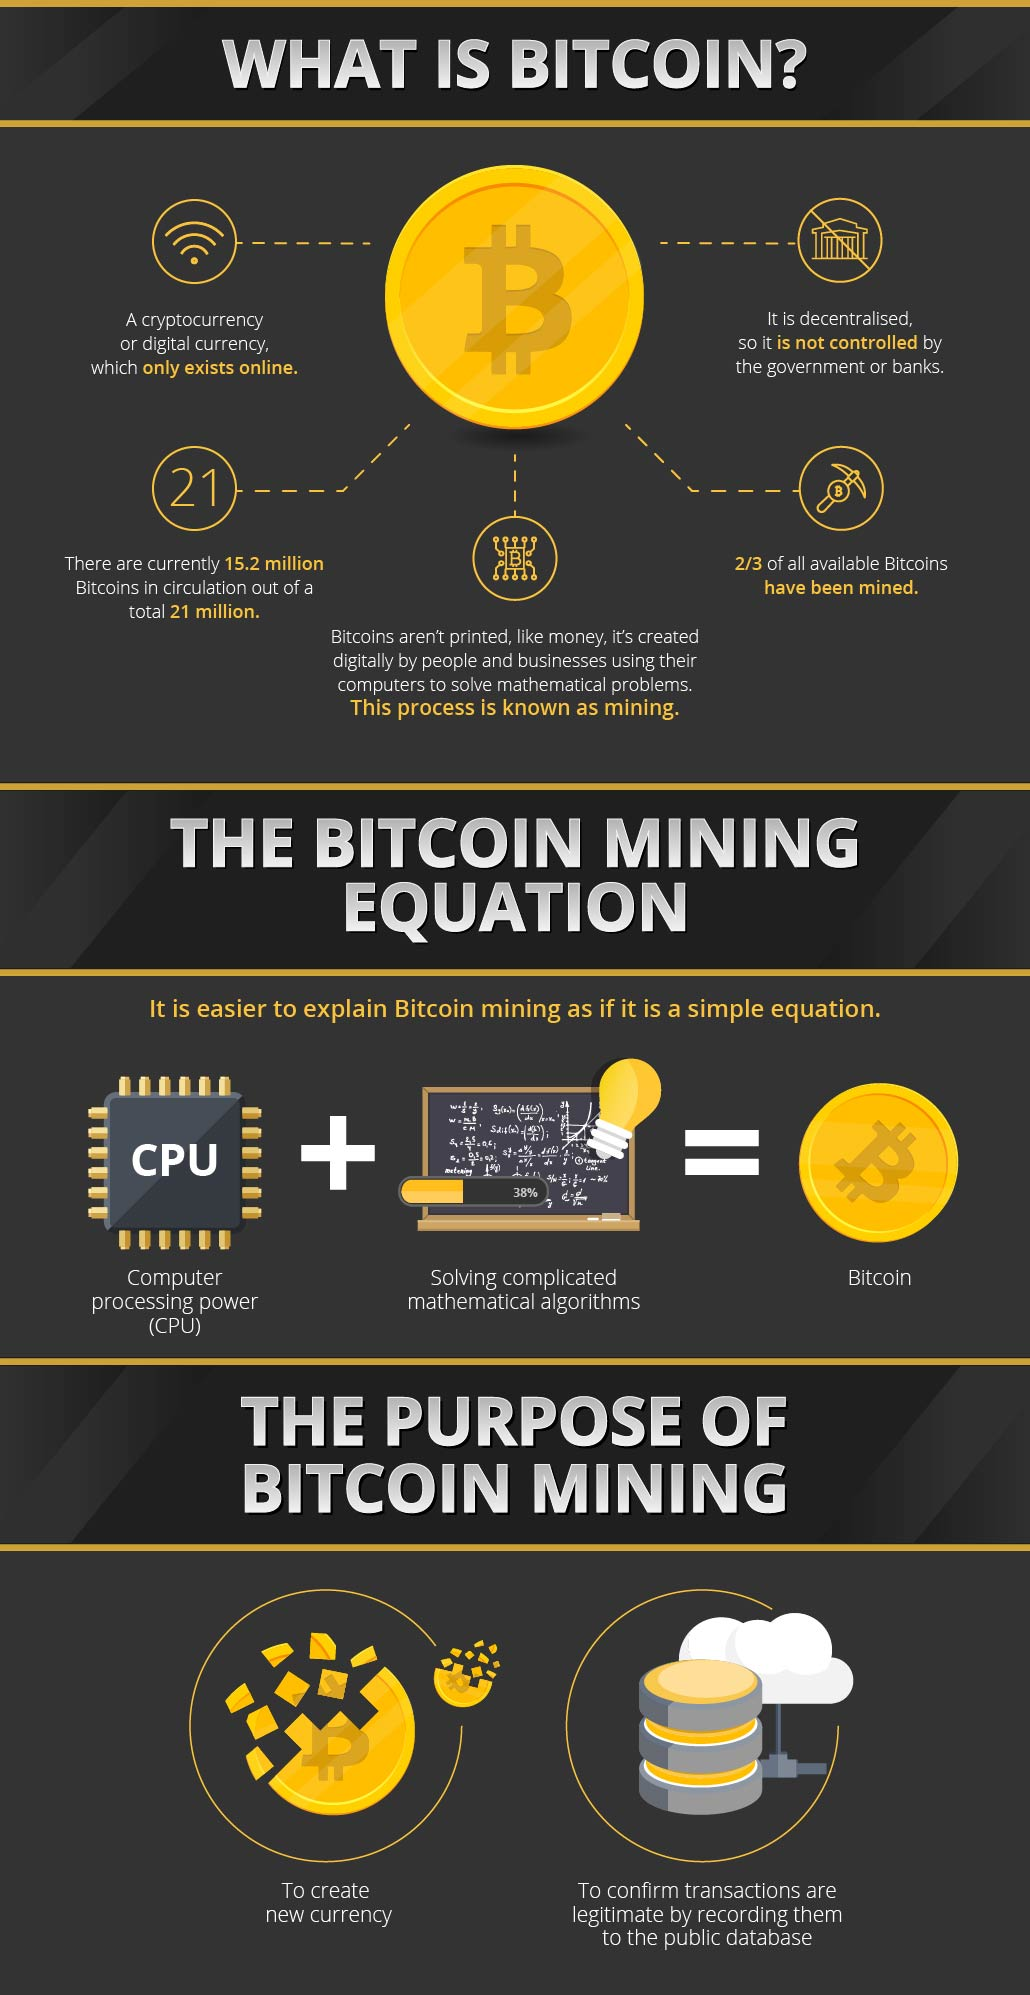 Do You Have What It Takes To Mine Bitcoin? - Bitcoin Pro